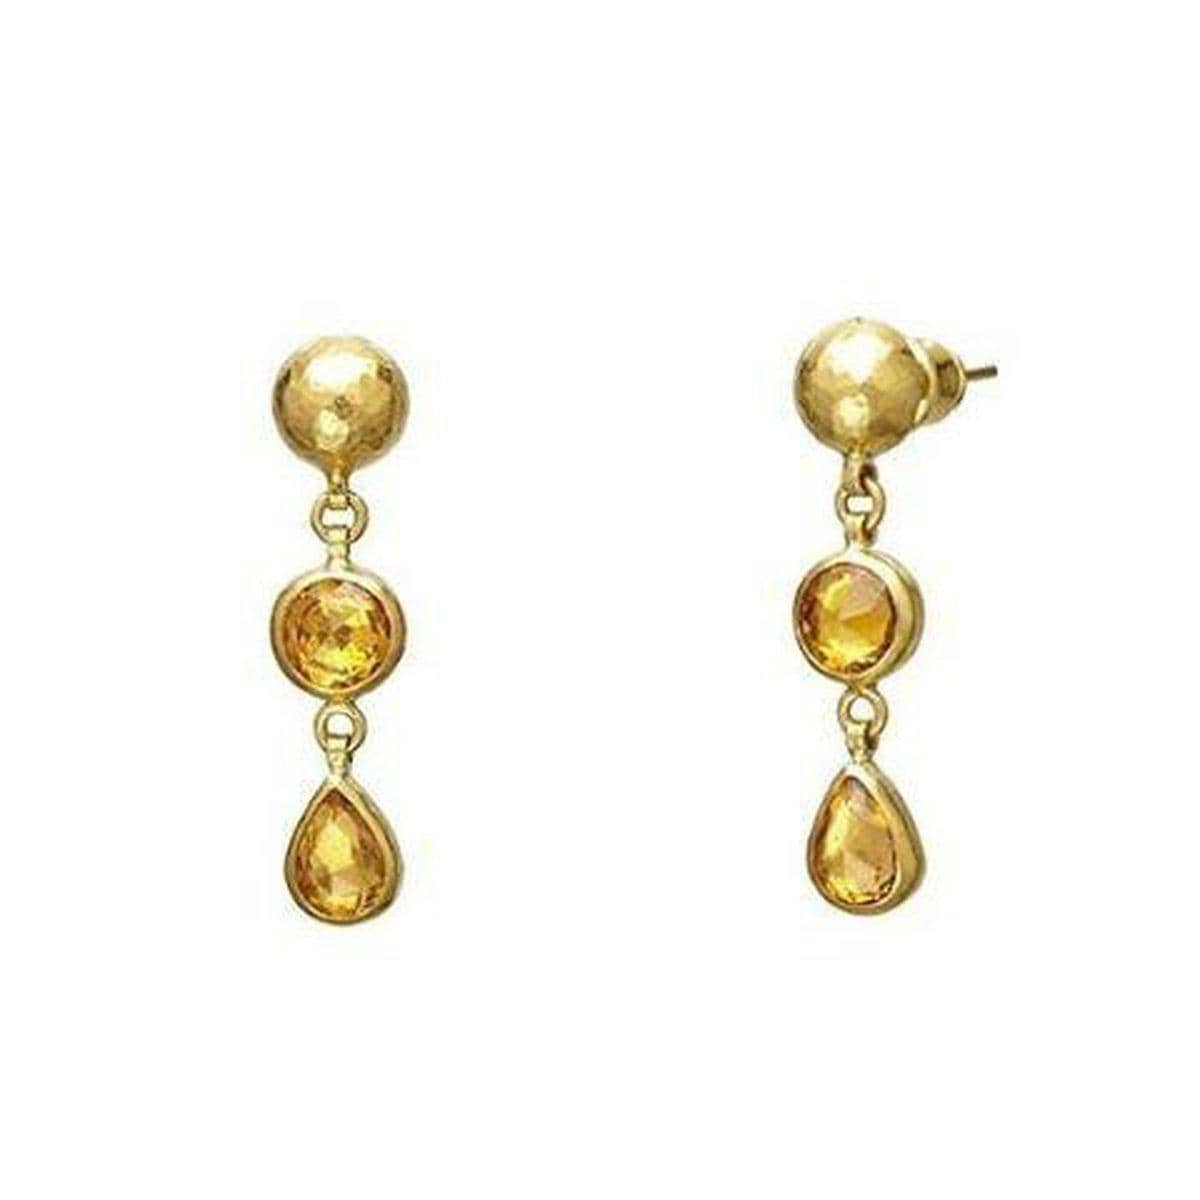 Elements 24K Gold Sapphire Earrings - E-U23945-FSA